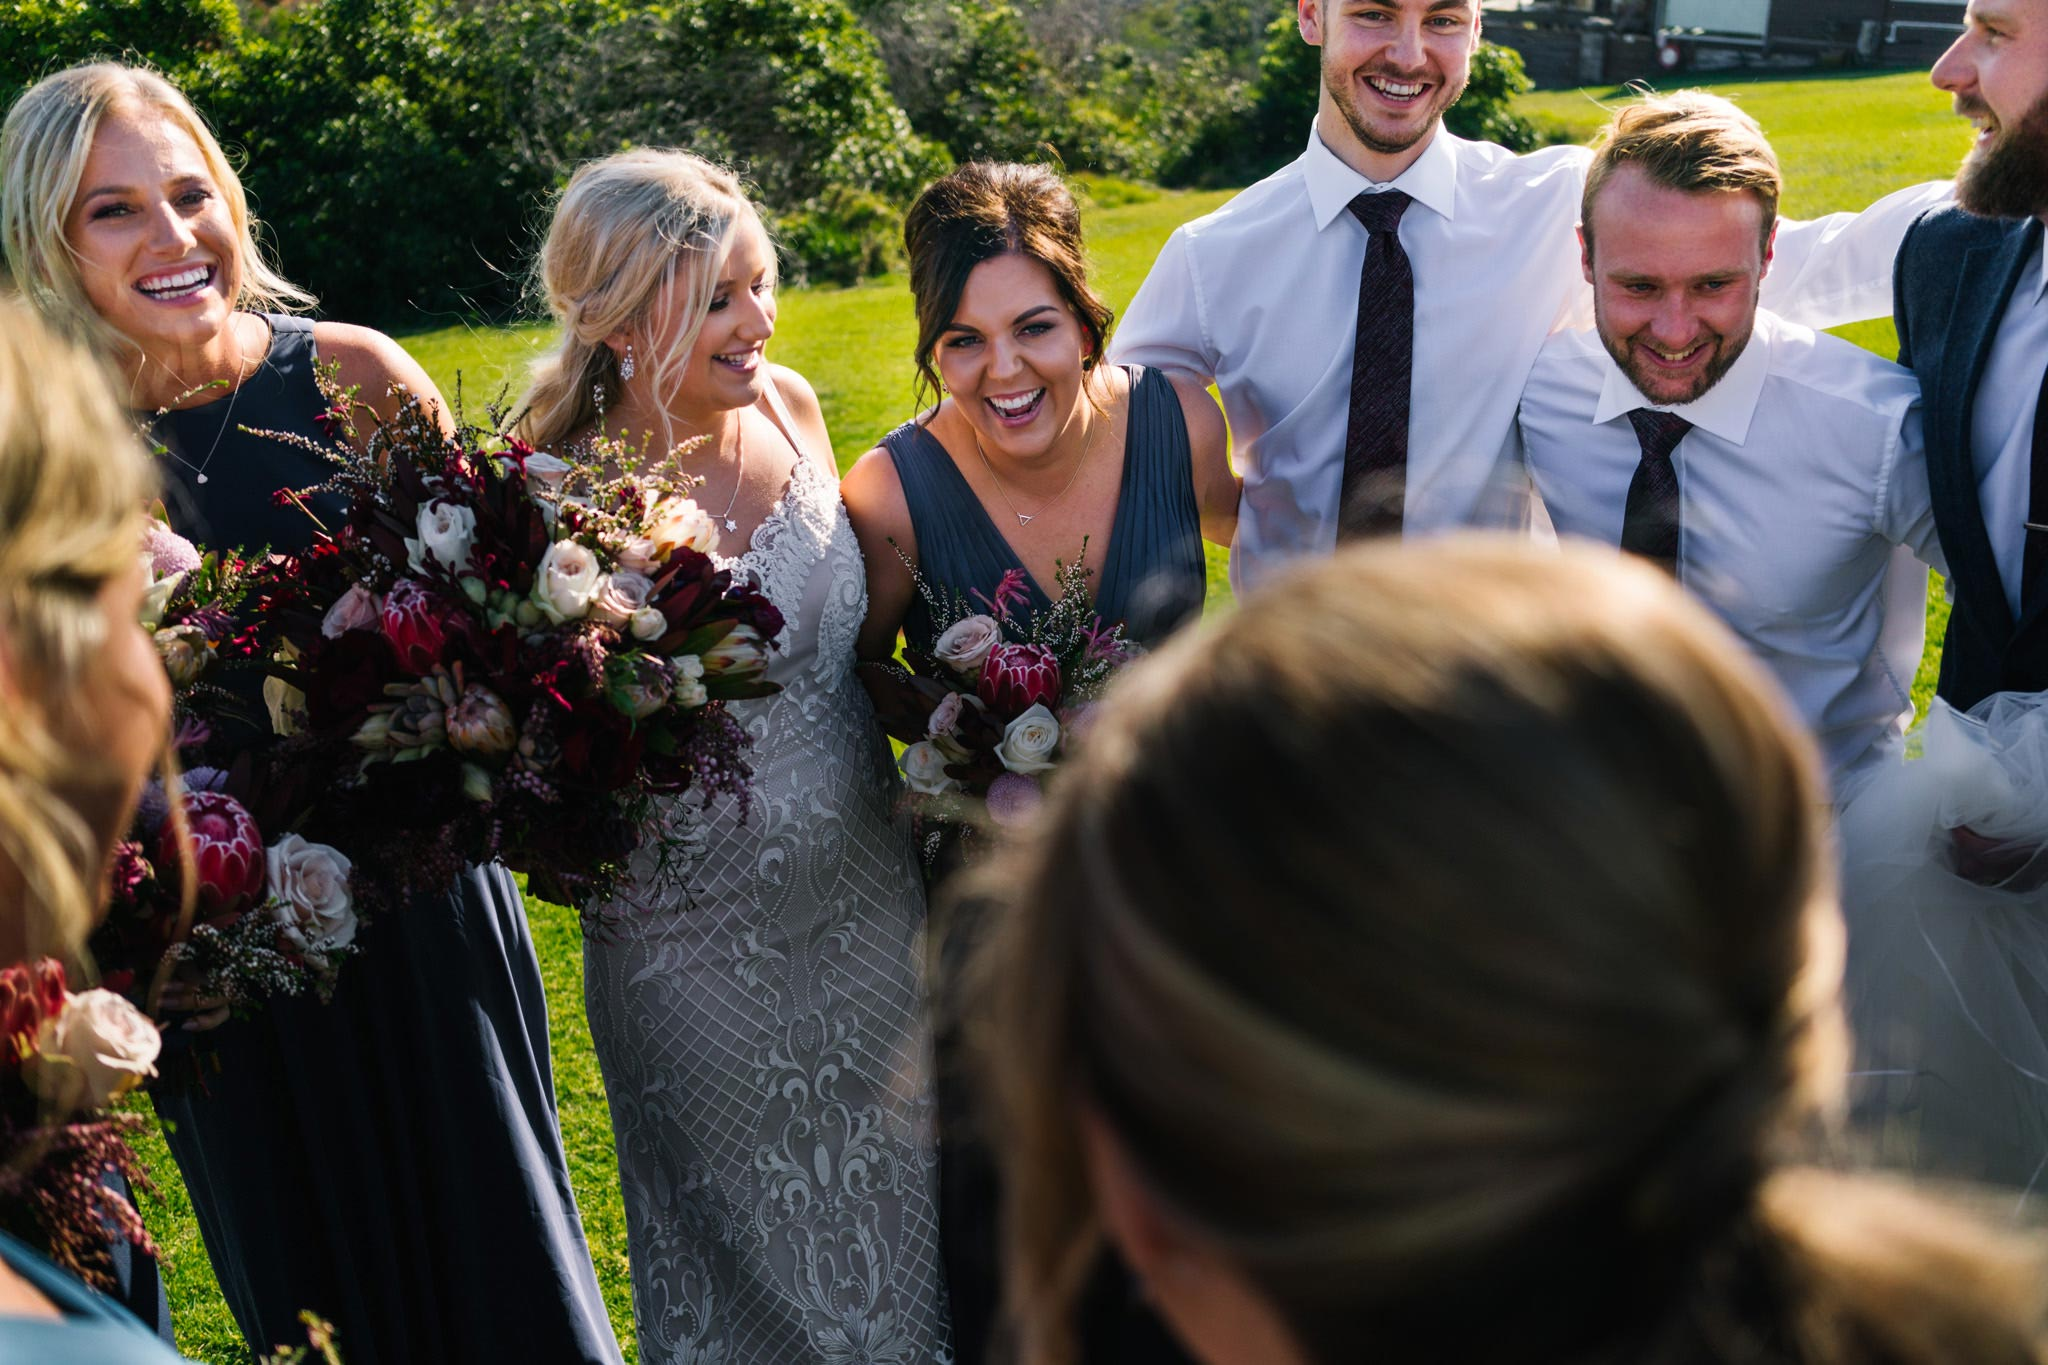 Bridal party embracing and smiling after ceremony